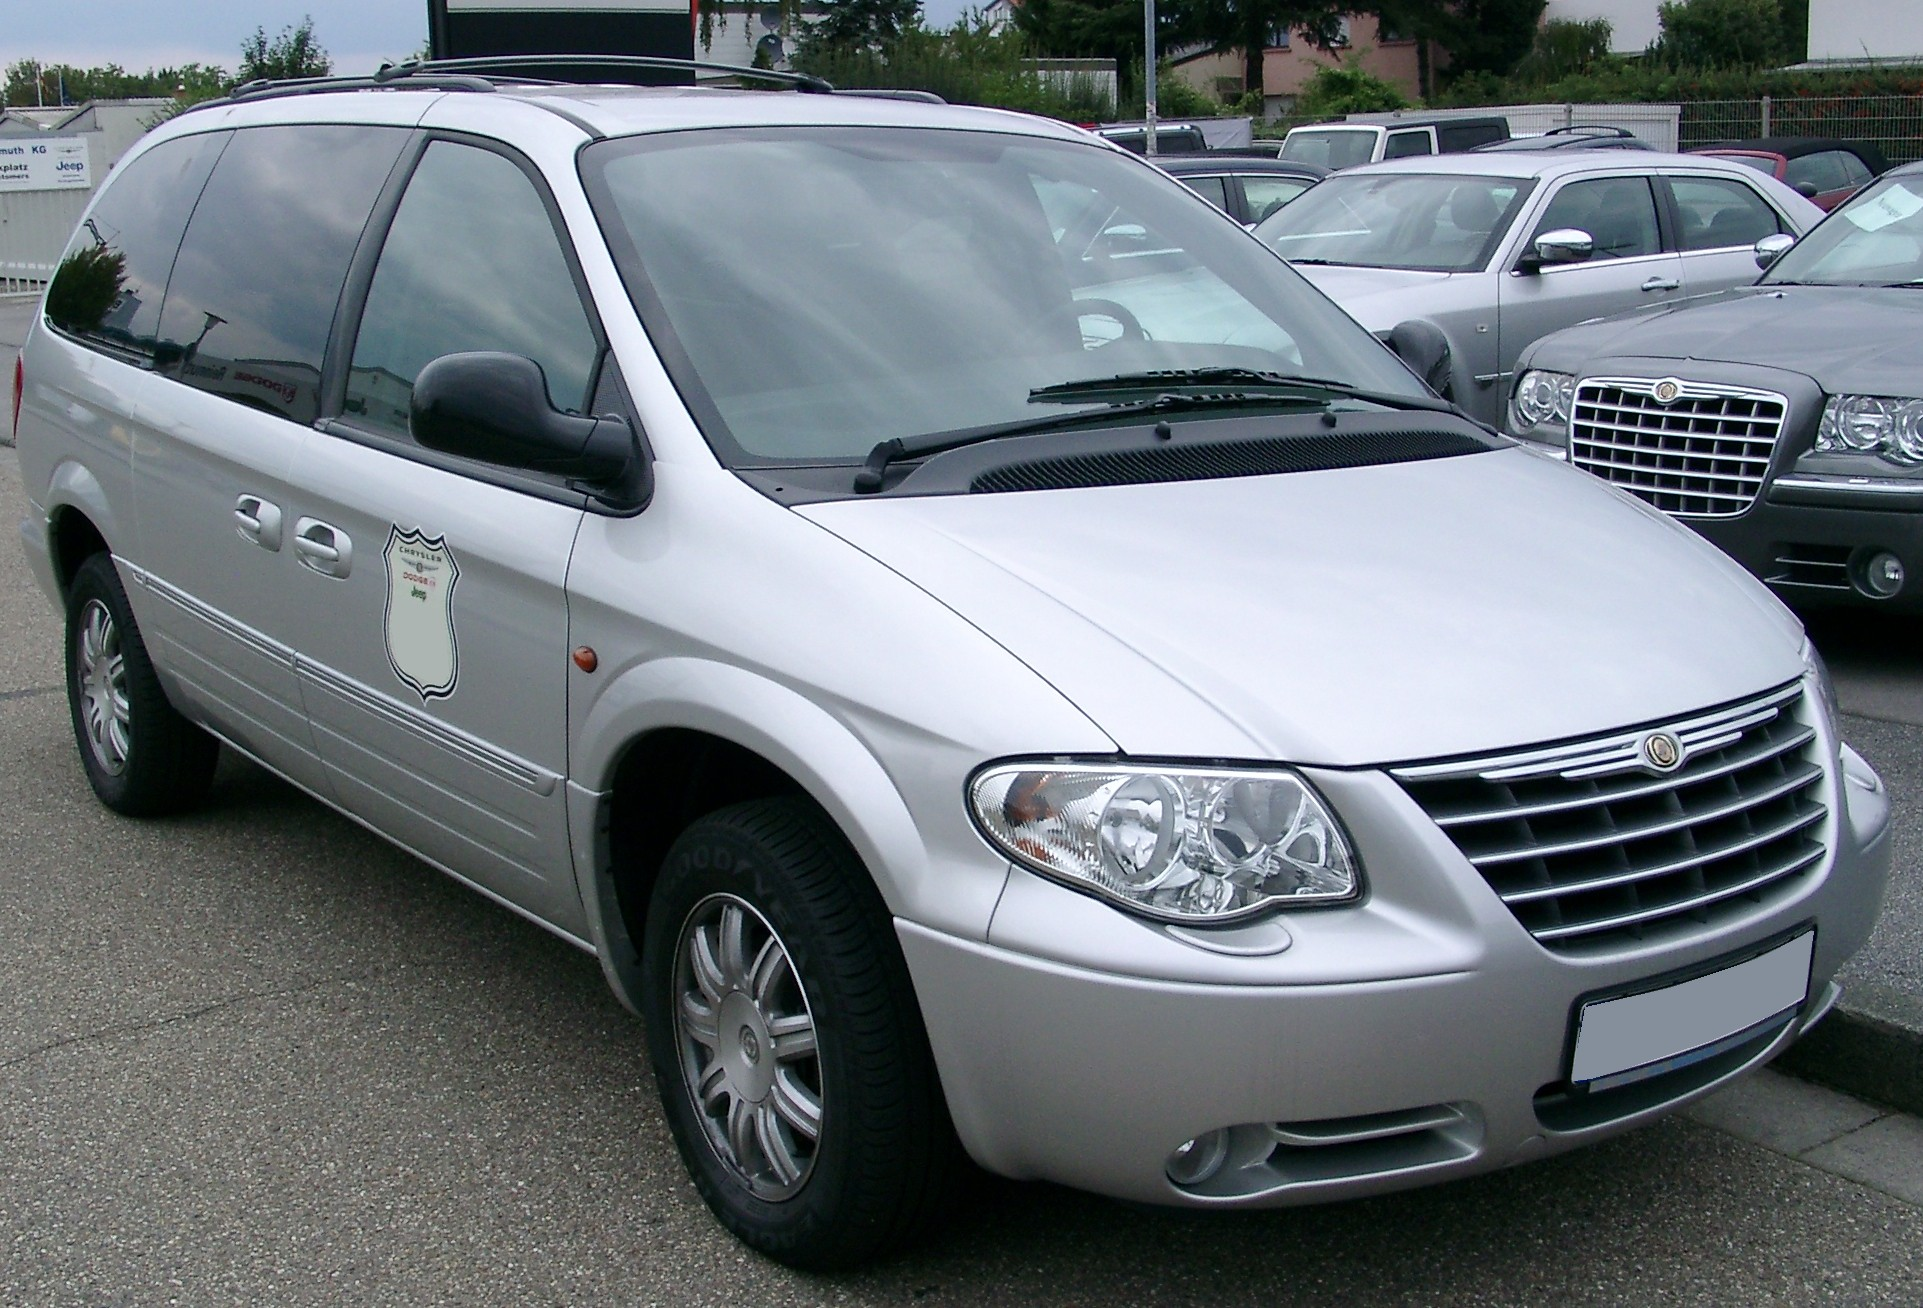 chrysler voyager 2000 - photo #34